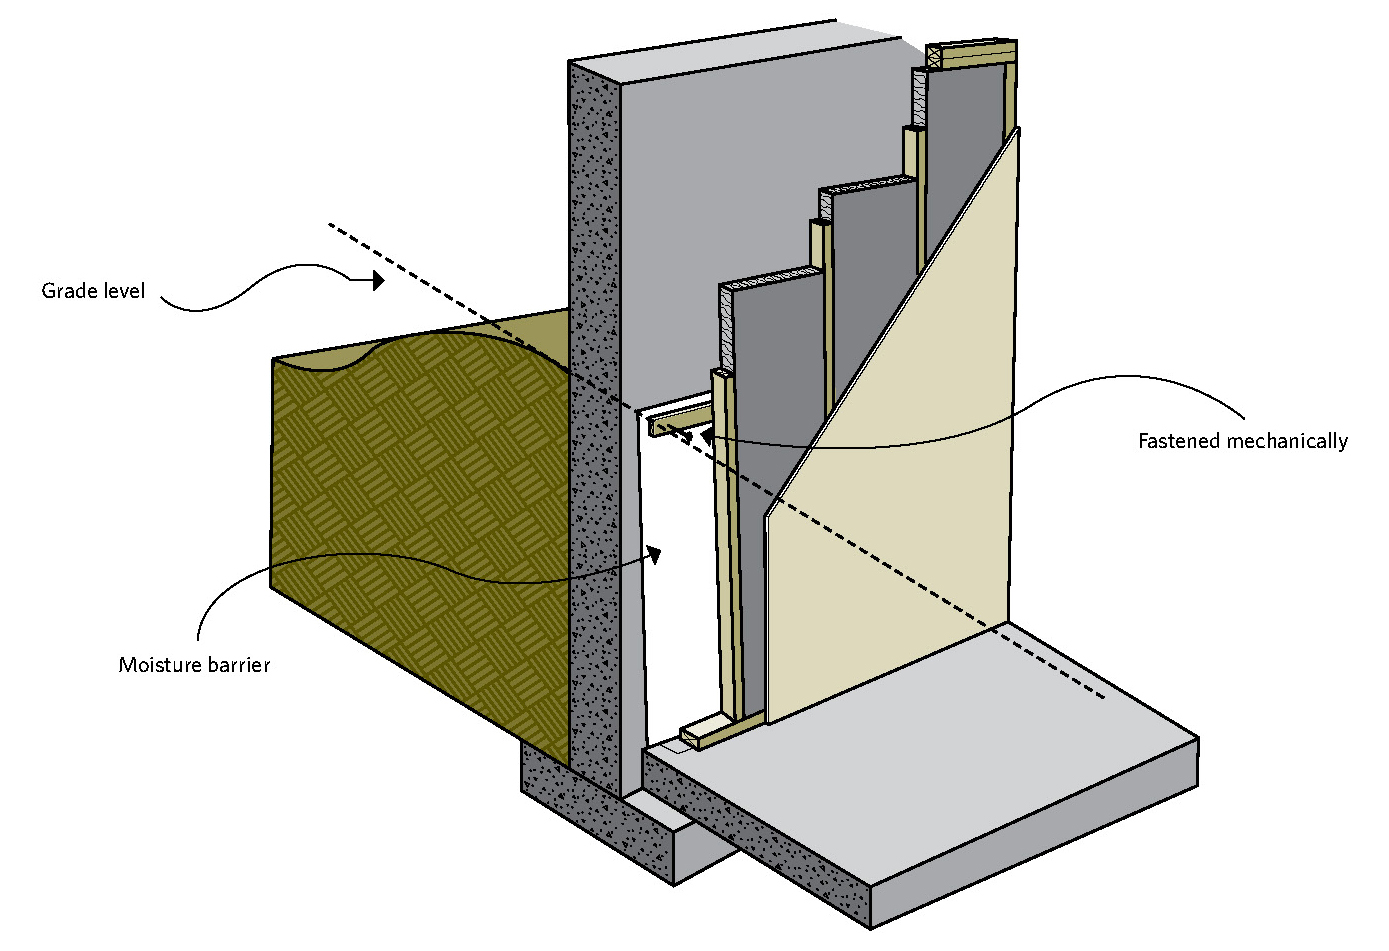 Frame Wall With Single Or Double Layer Of Batt Insulation